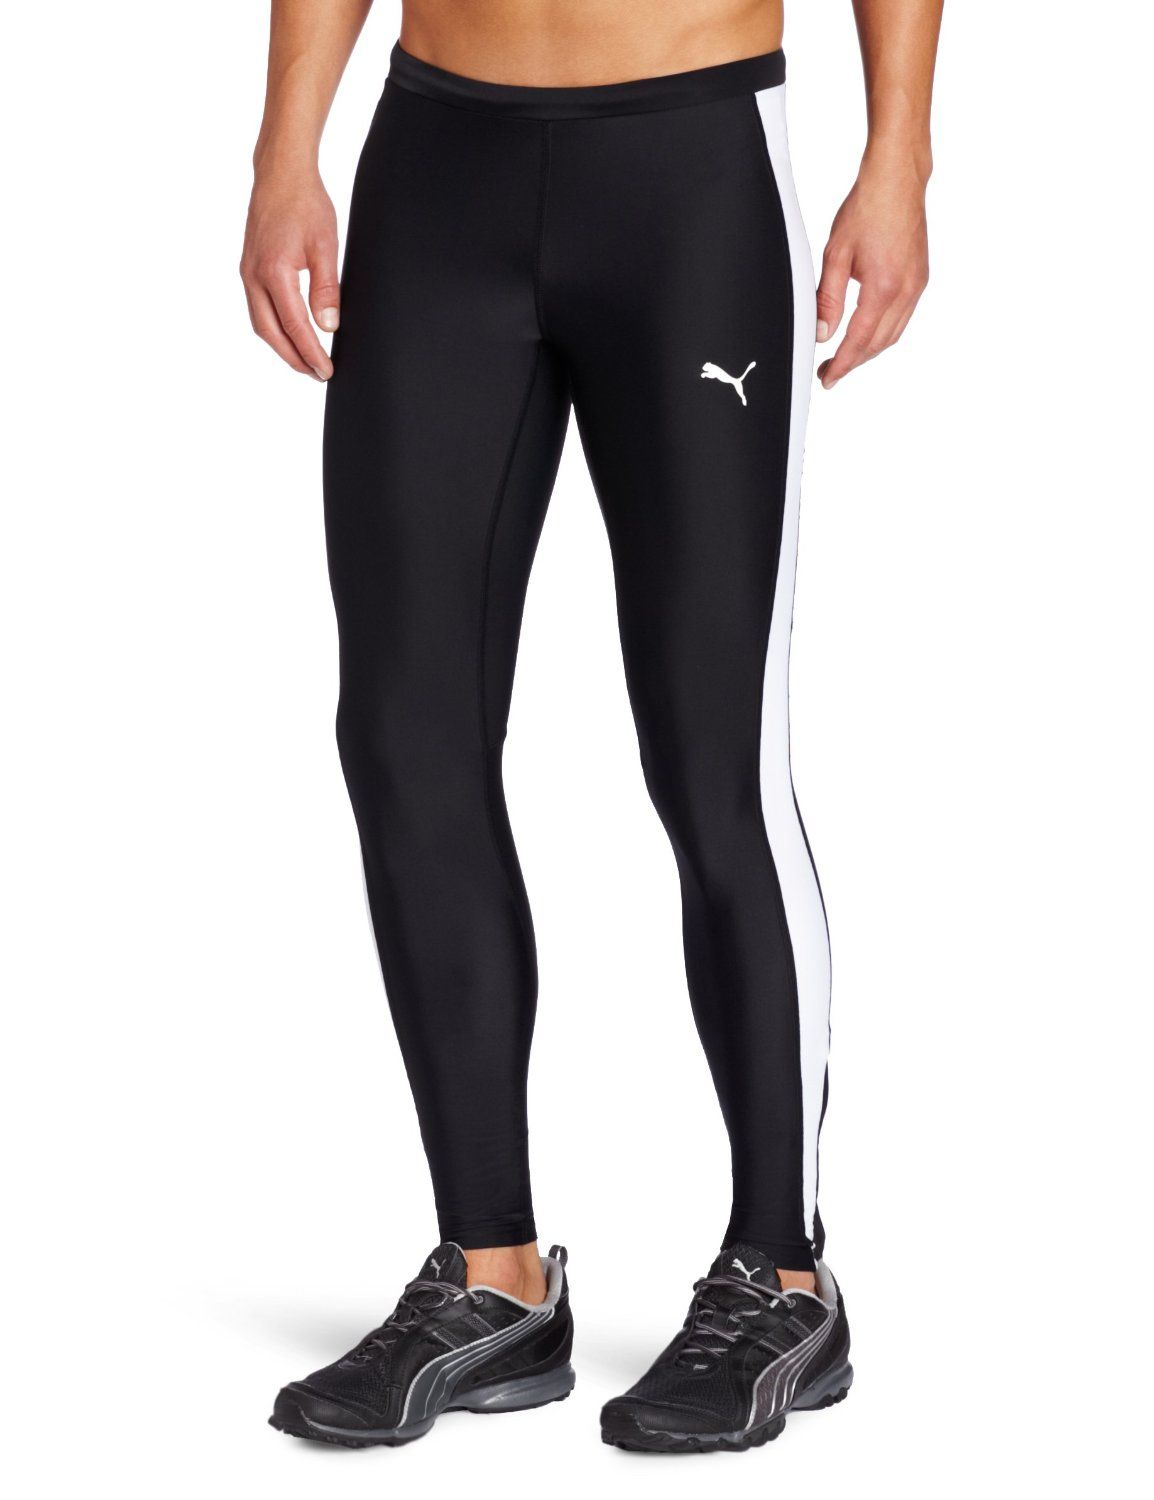 264e1ffcfbb3a Amazon.com: Puma Mens Tb Running Long Tight: Sports & Outdoors ...